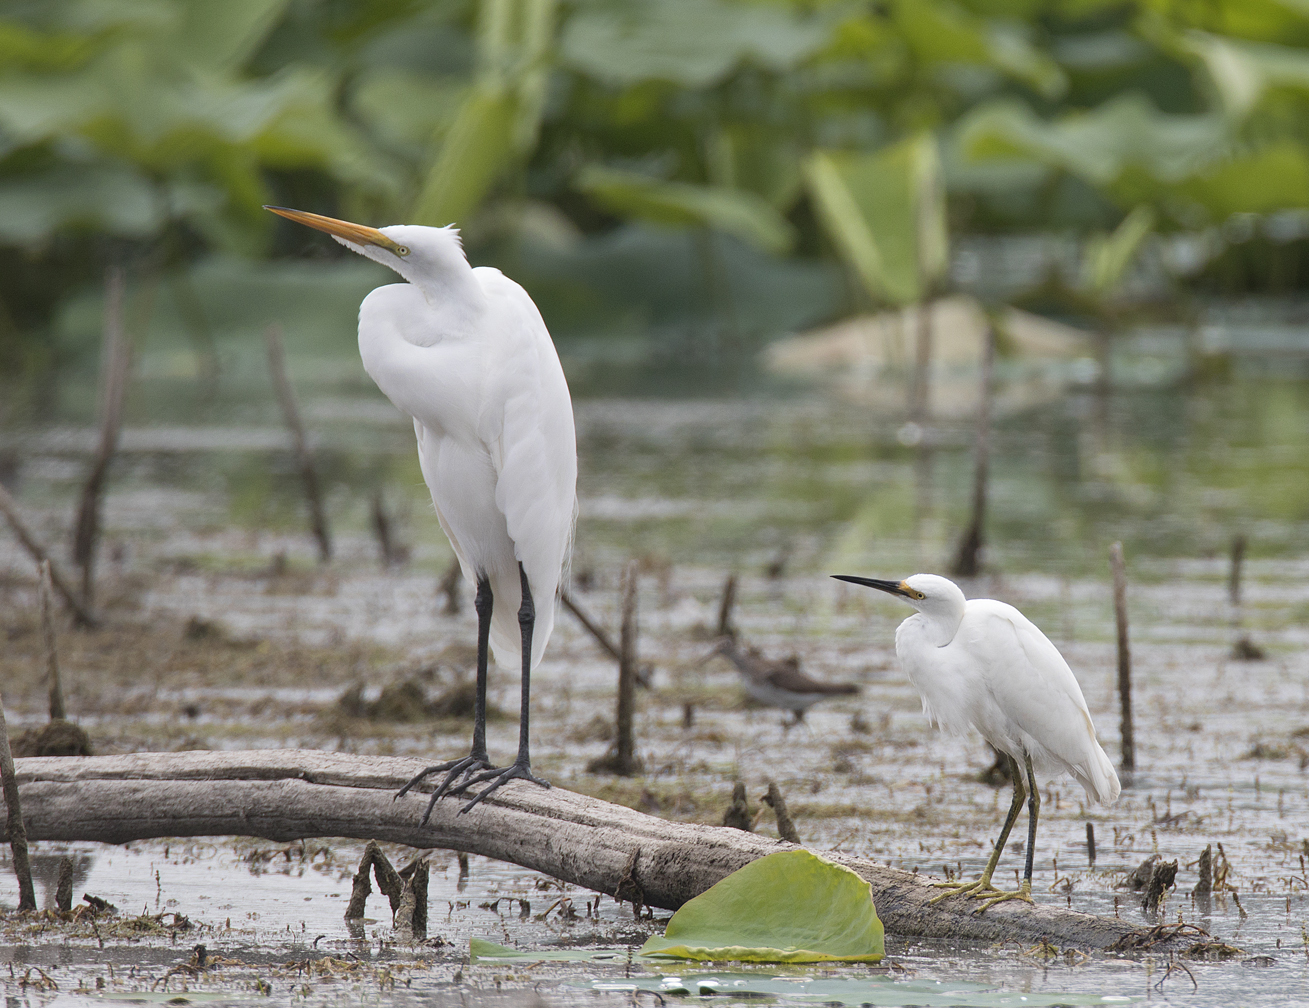 Great Egret and the smaller Snowy Egret